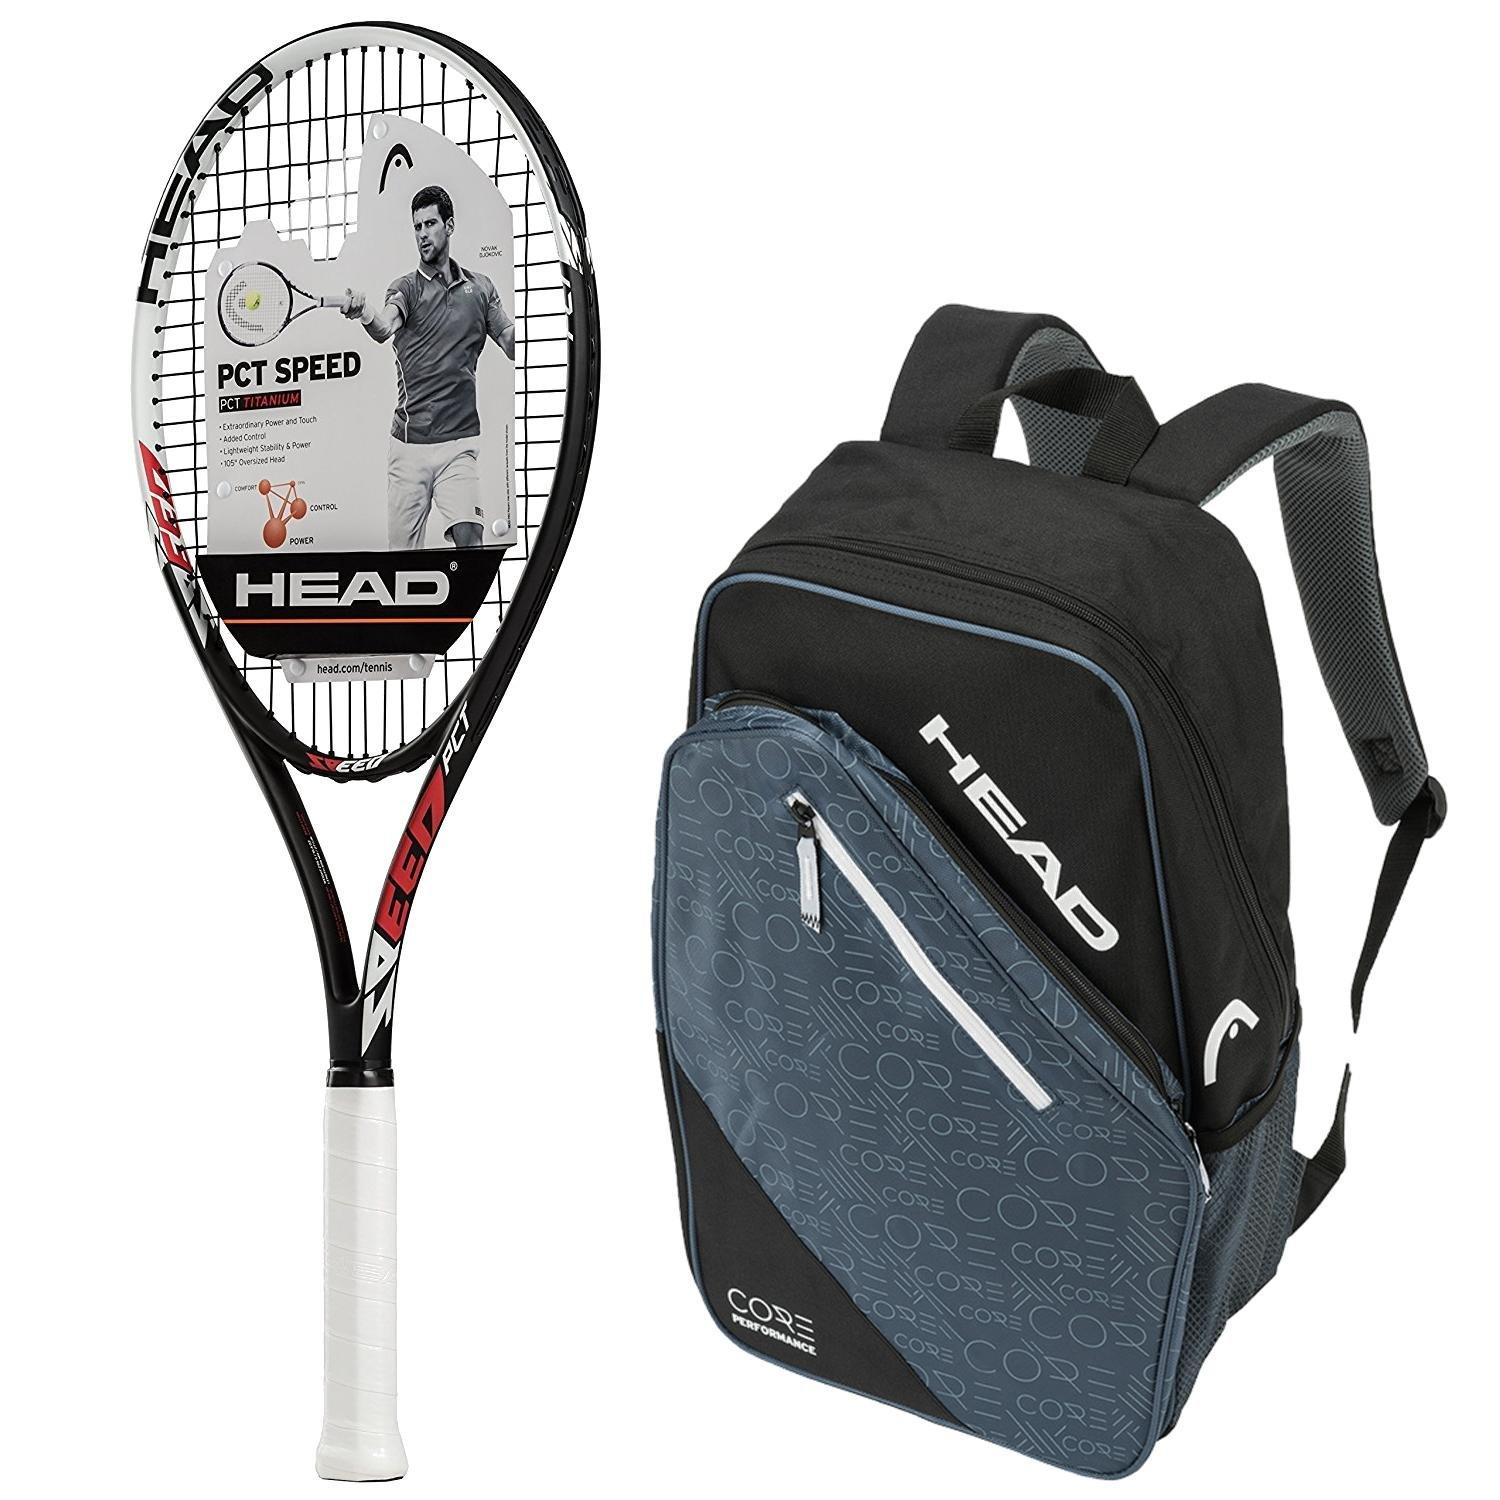 Amazon.com : Head PCT Speed Pre-Strung Tennis Racquet ...